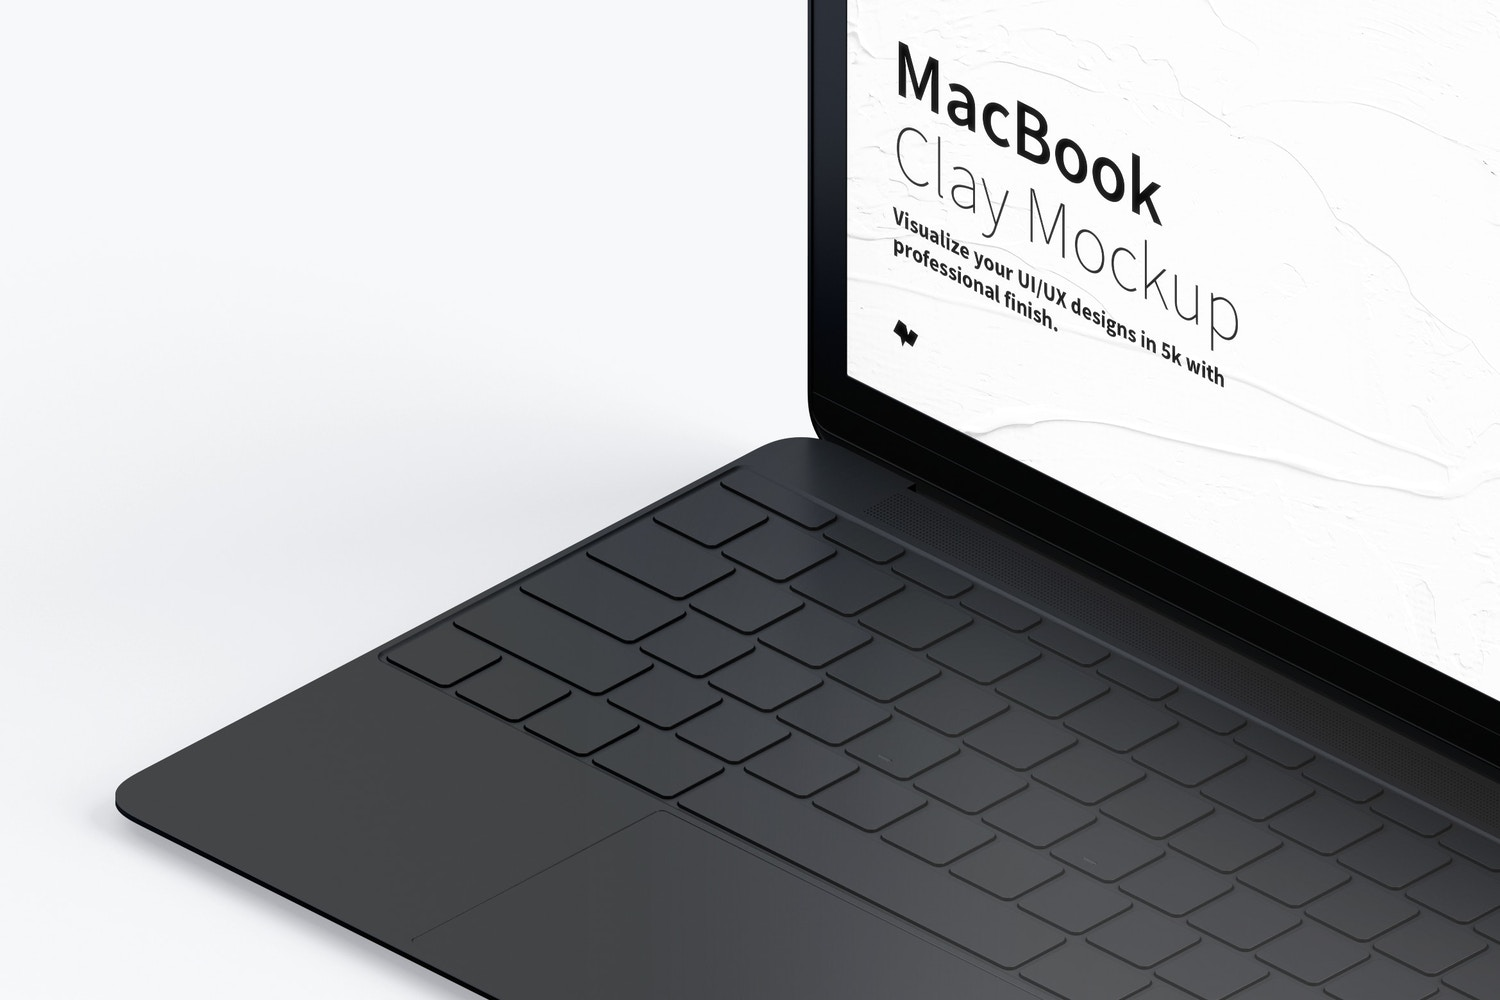 Clay MacBook Mockup, Isometric Right View (3) by Original Mockups on Original Mockups